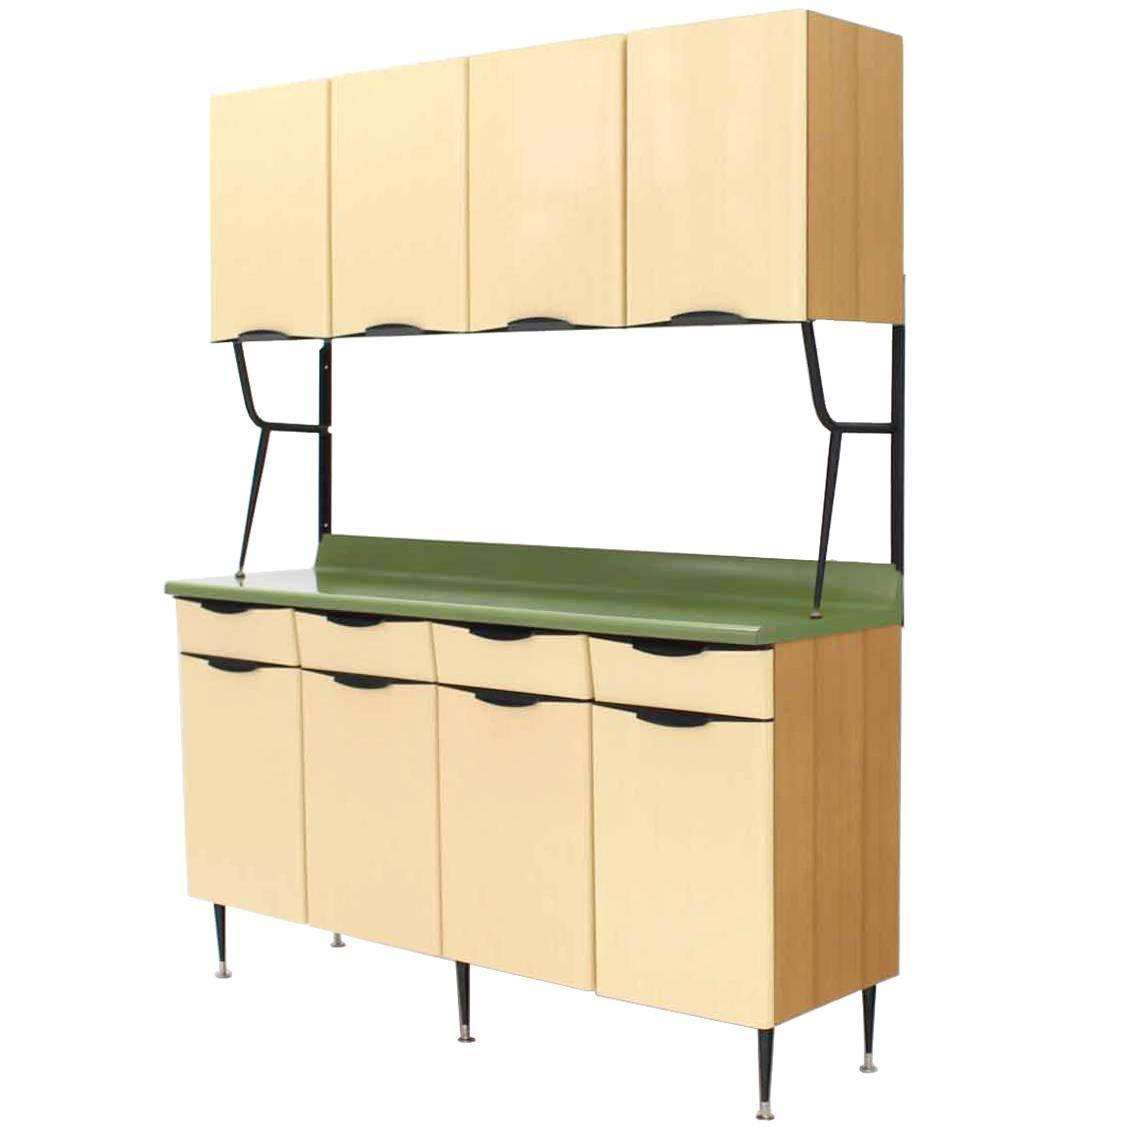 Mid century italian modern kitchen cabinet for sale at 1stdibs for Mid century modern kitchen cabinets